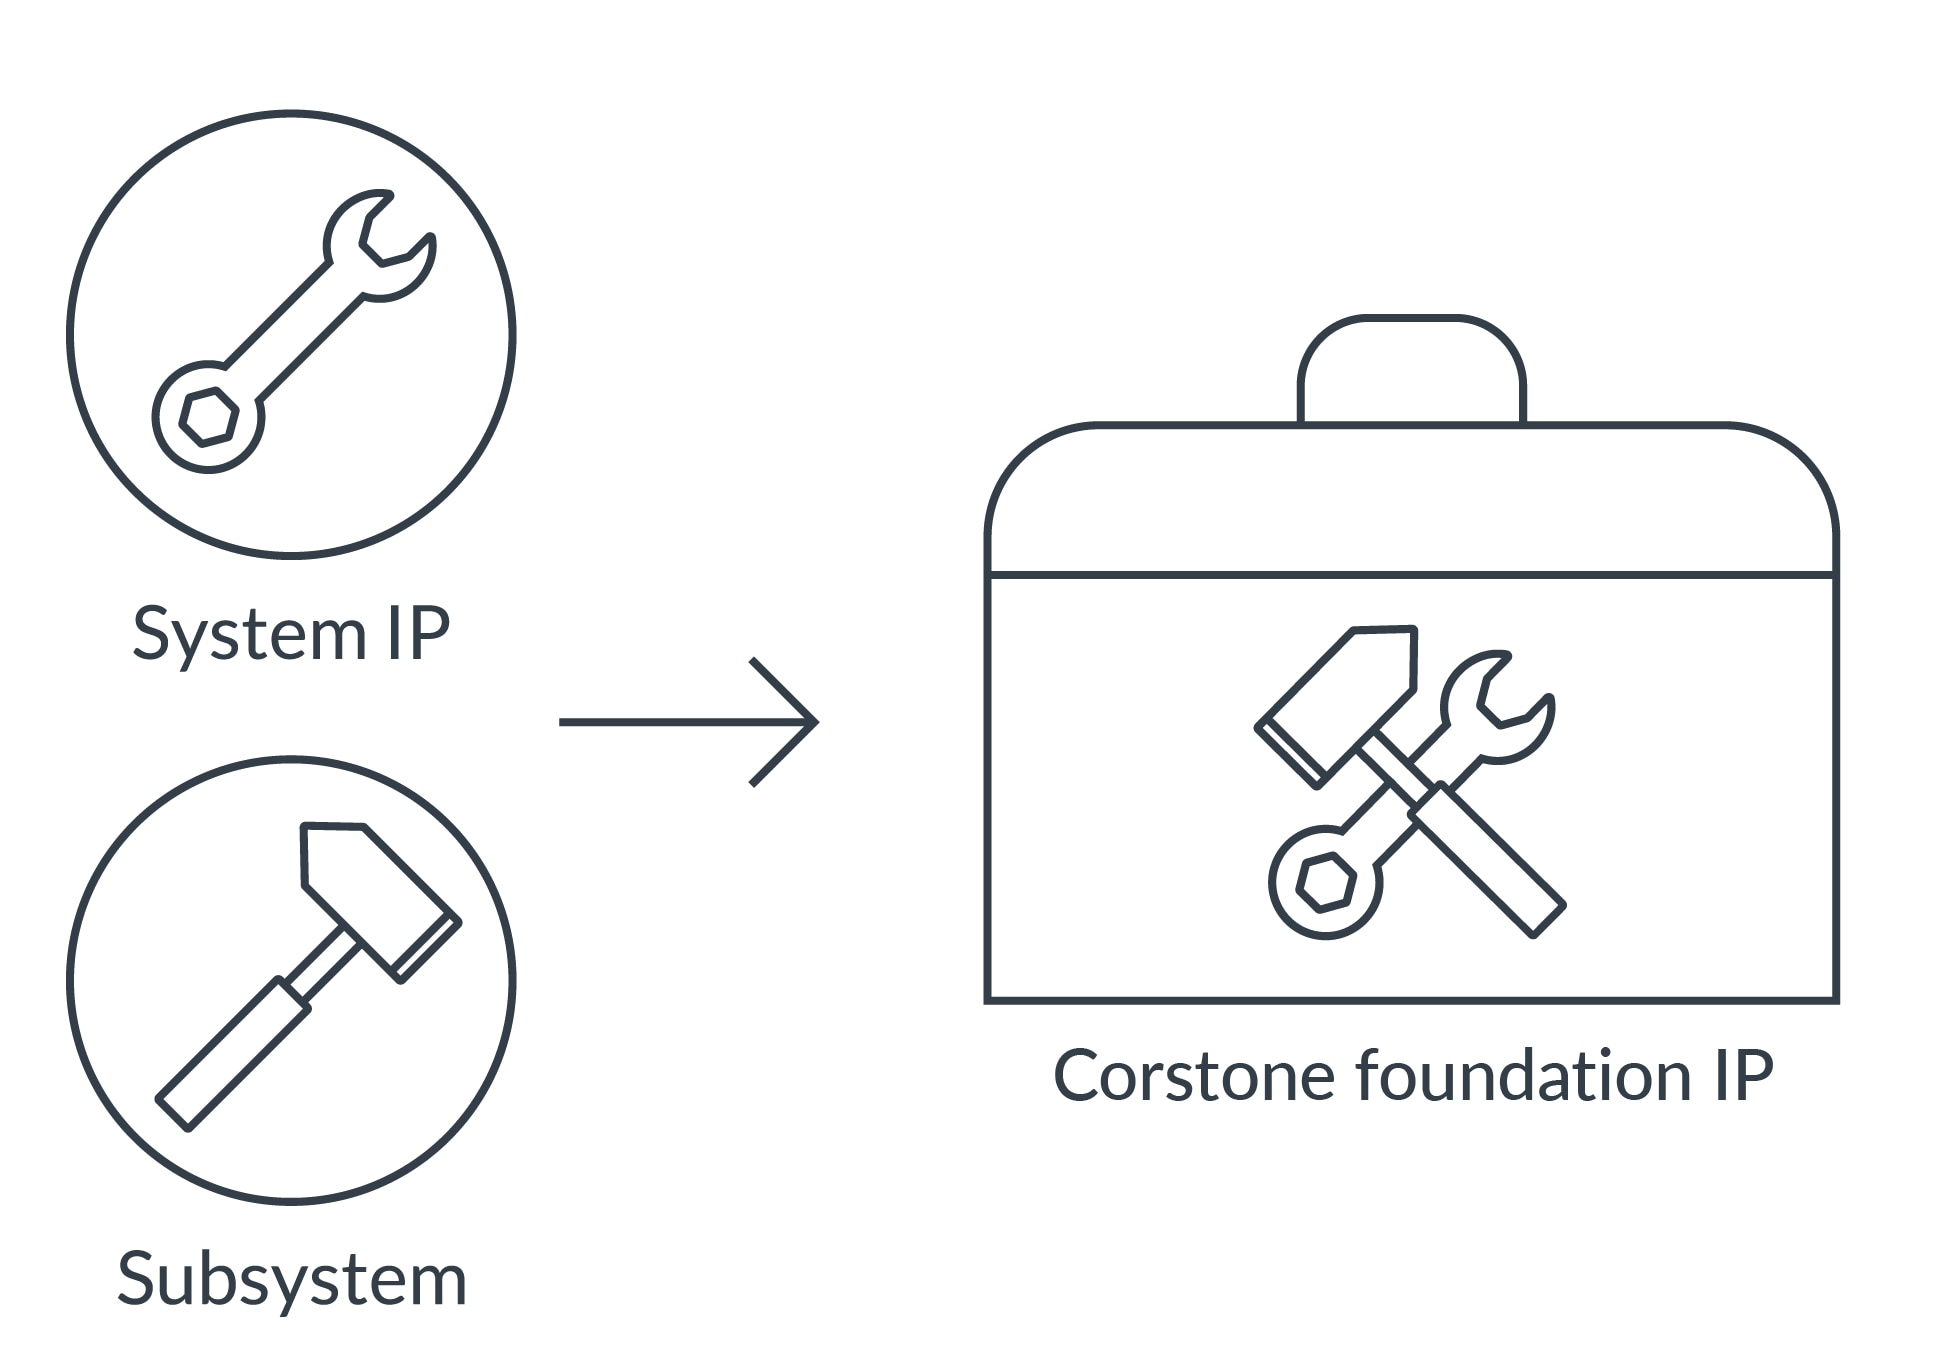 Corstone foundation IP diagram.